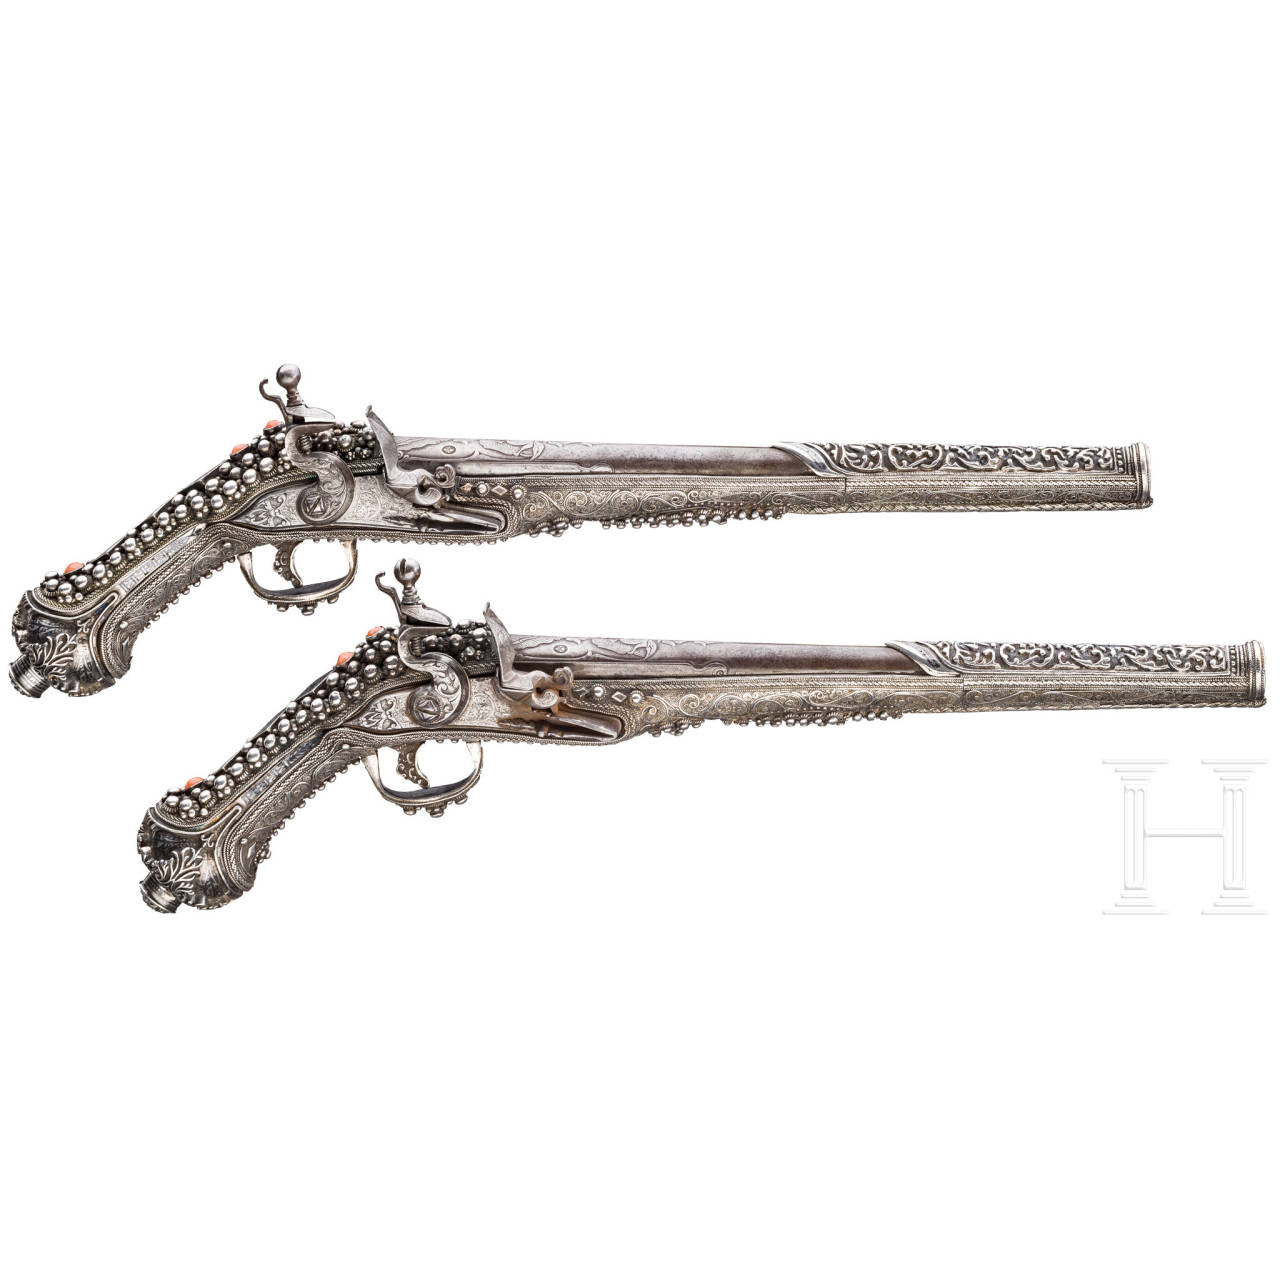 A magnificent pair of Balkan Turkish chiselled and silver-mounted flintlock pistols, 19th century